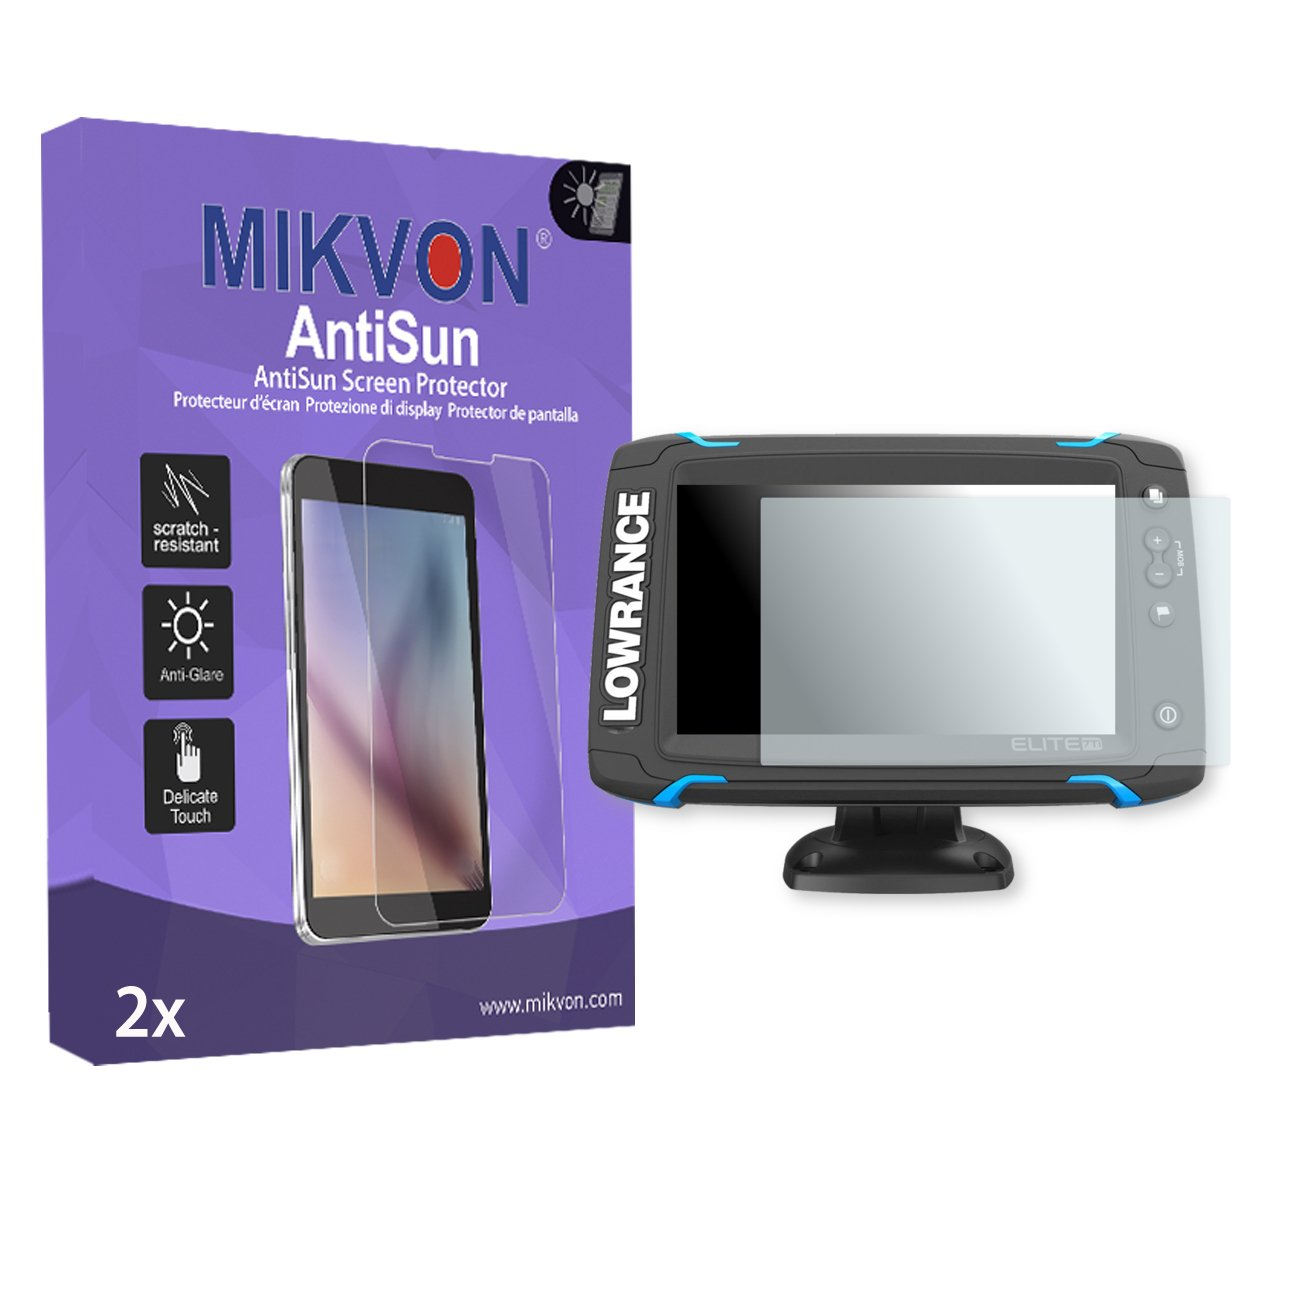 MIKVON 2X AntiSun Screen Protector for Lowrance Elite-7 - Retail Package with Accessories